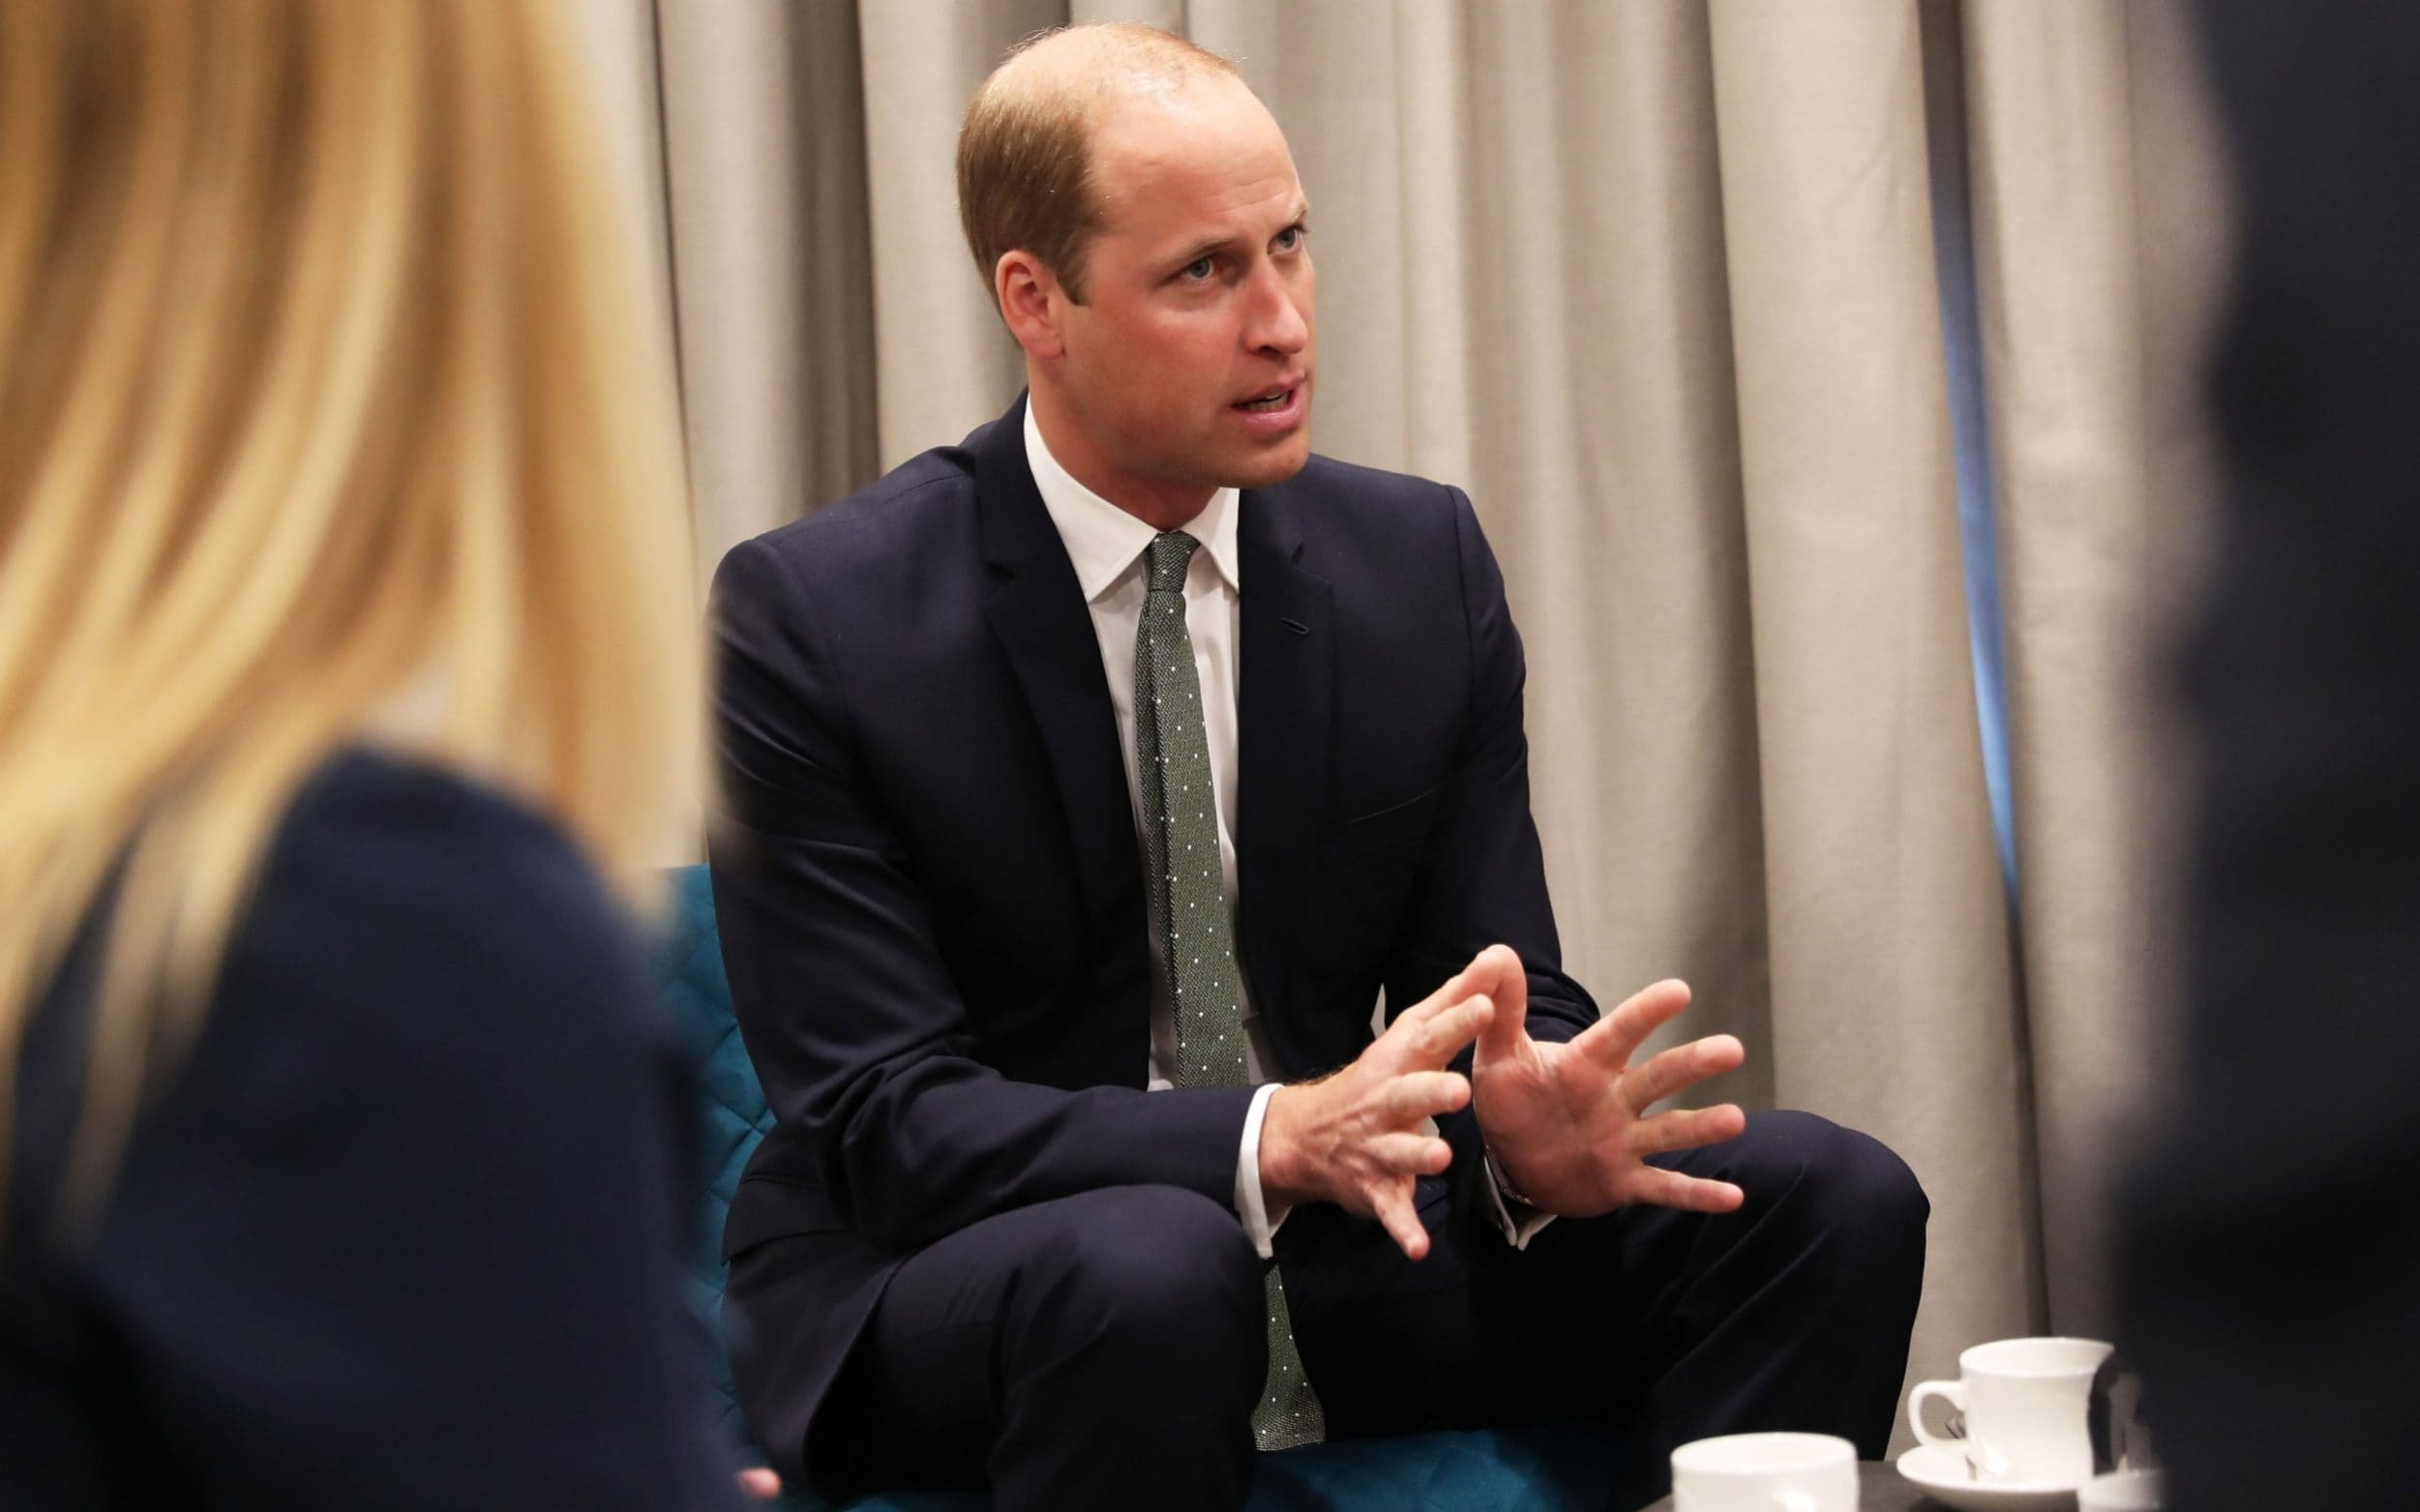 The Duke of Cambridge joins a breakout session with public and police professionals who have been affected by mental health challenges